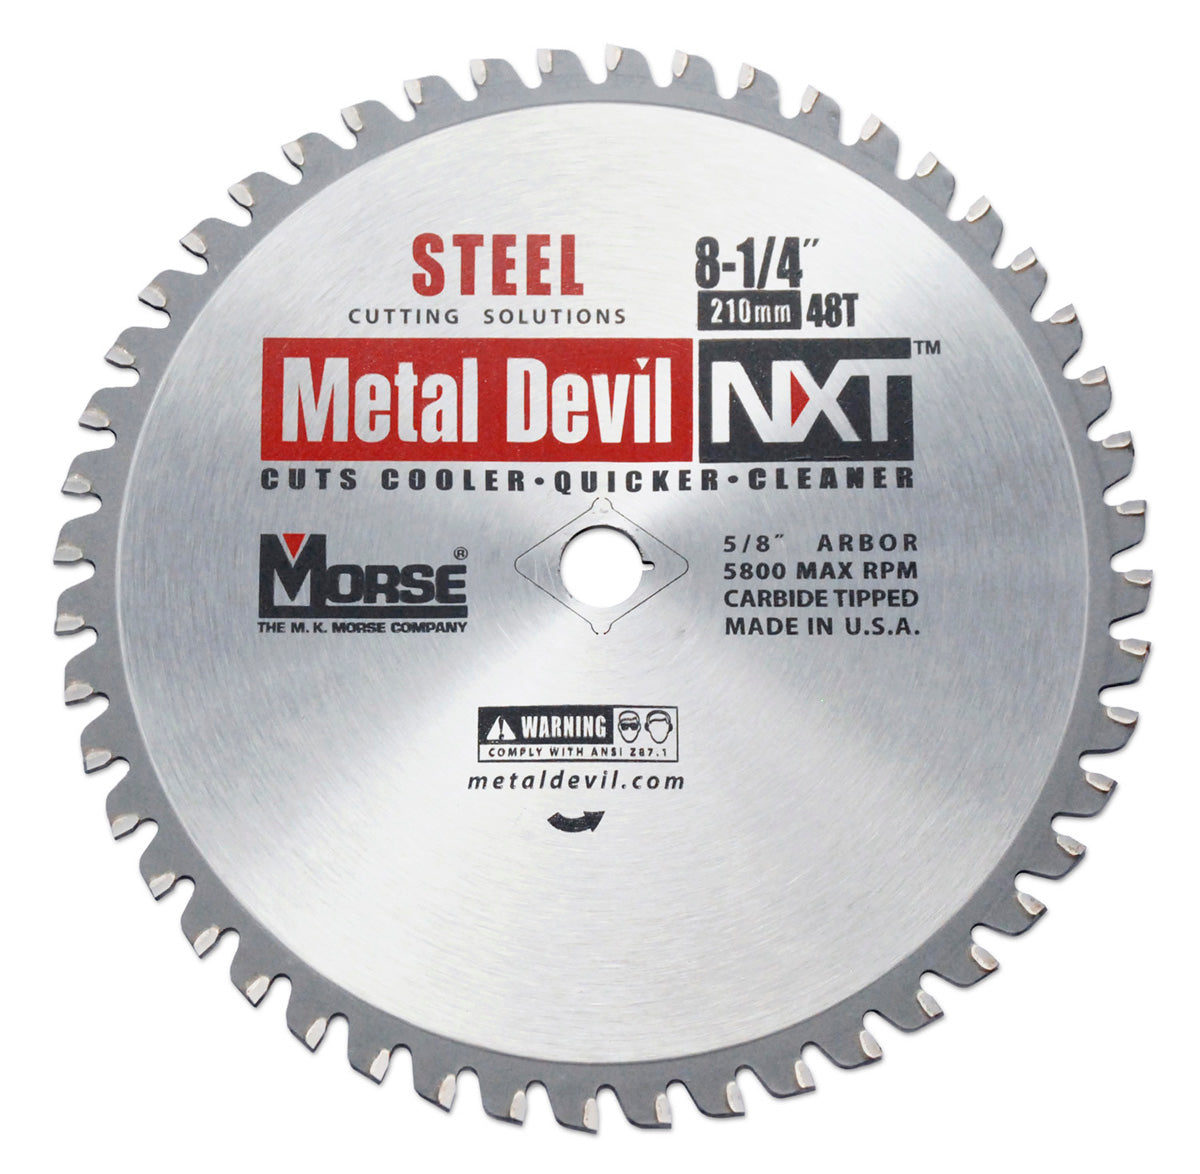 210mm (48 Tooth) Steel Cutting Metal Devil TCT Circular Saw Blade